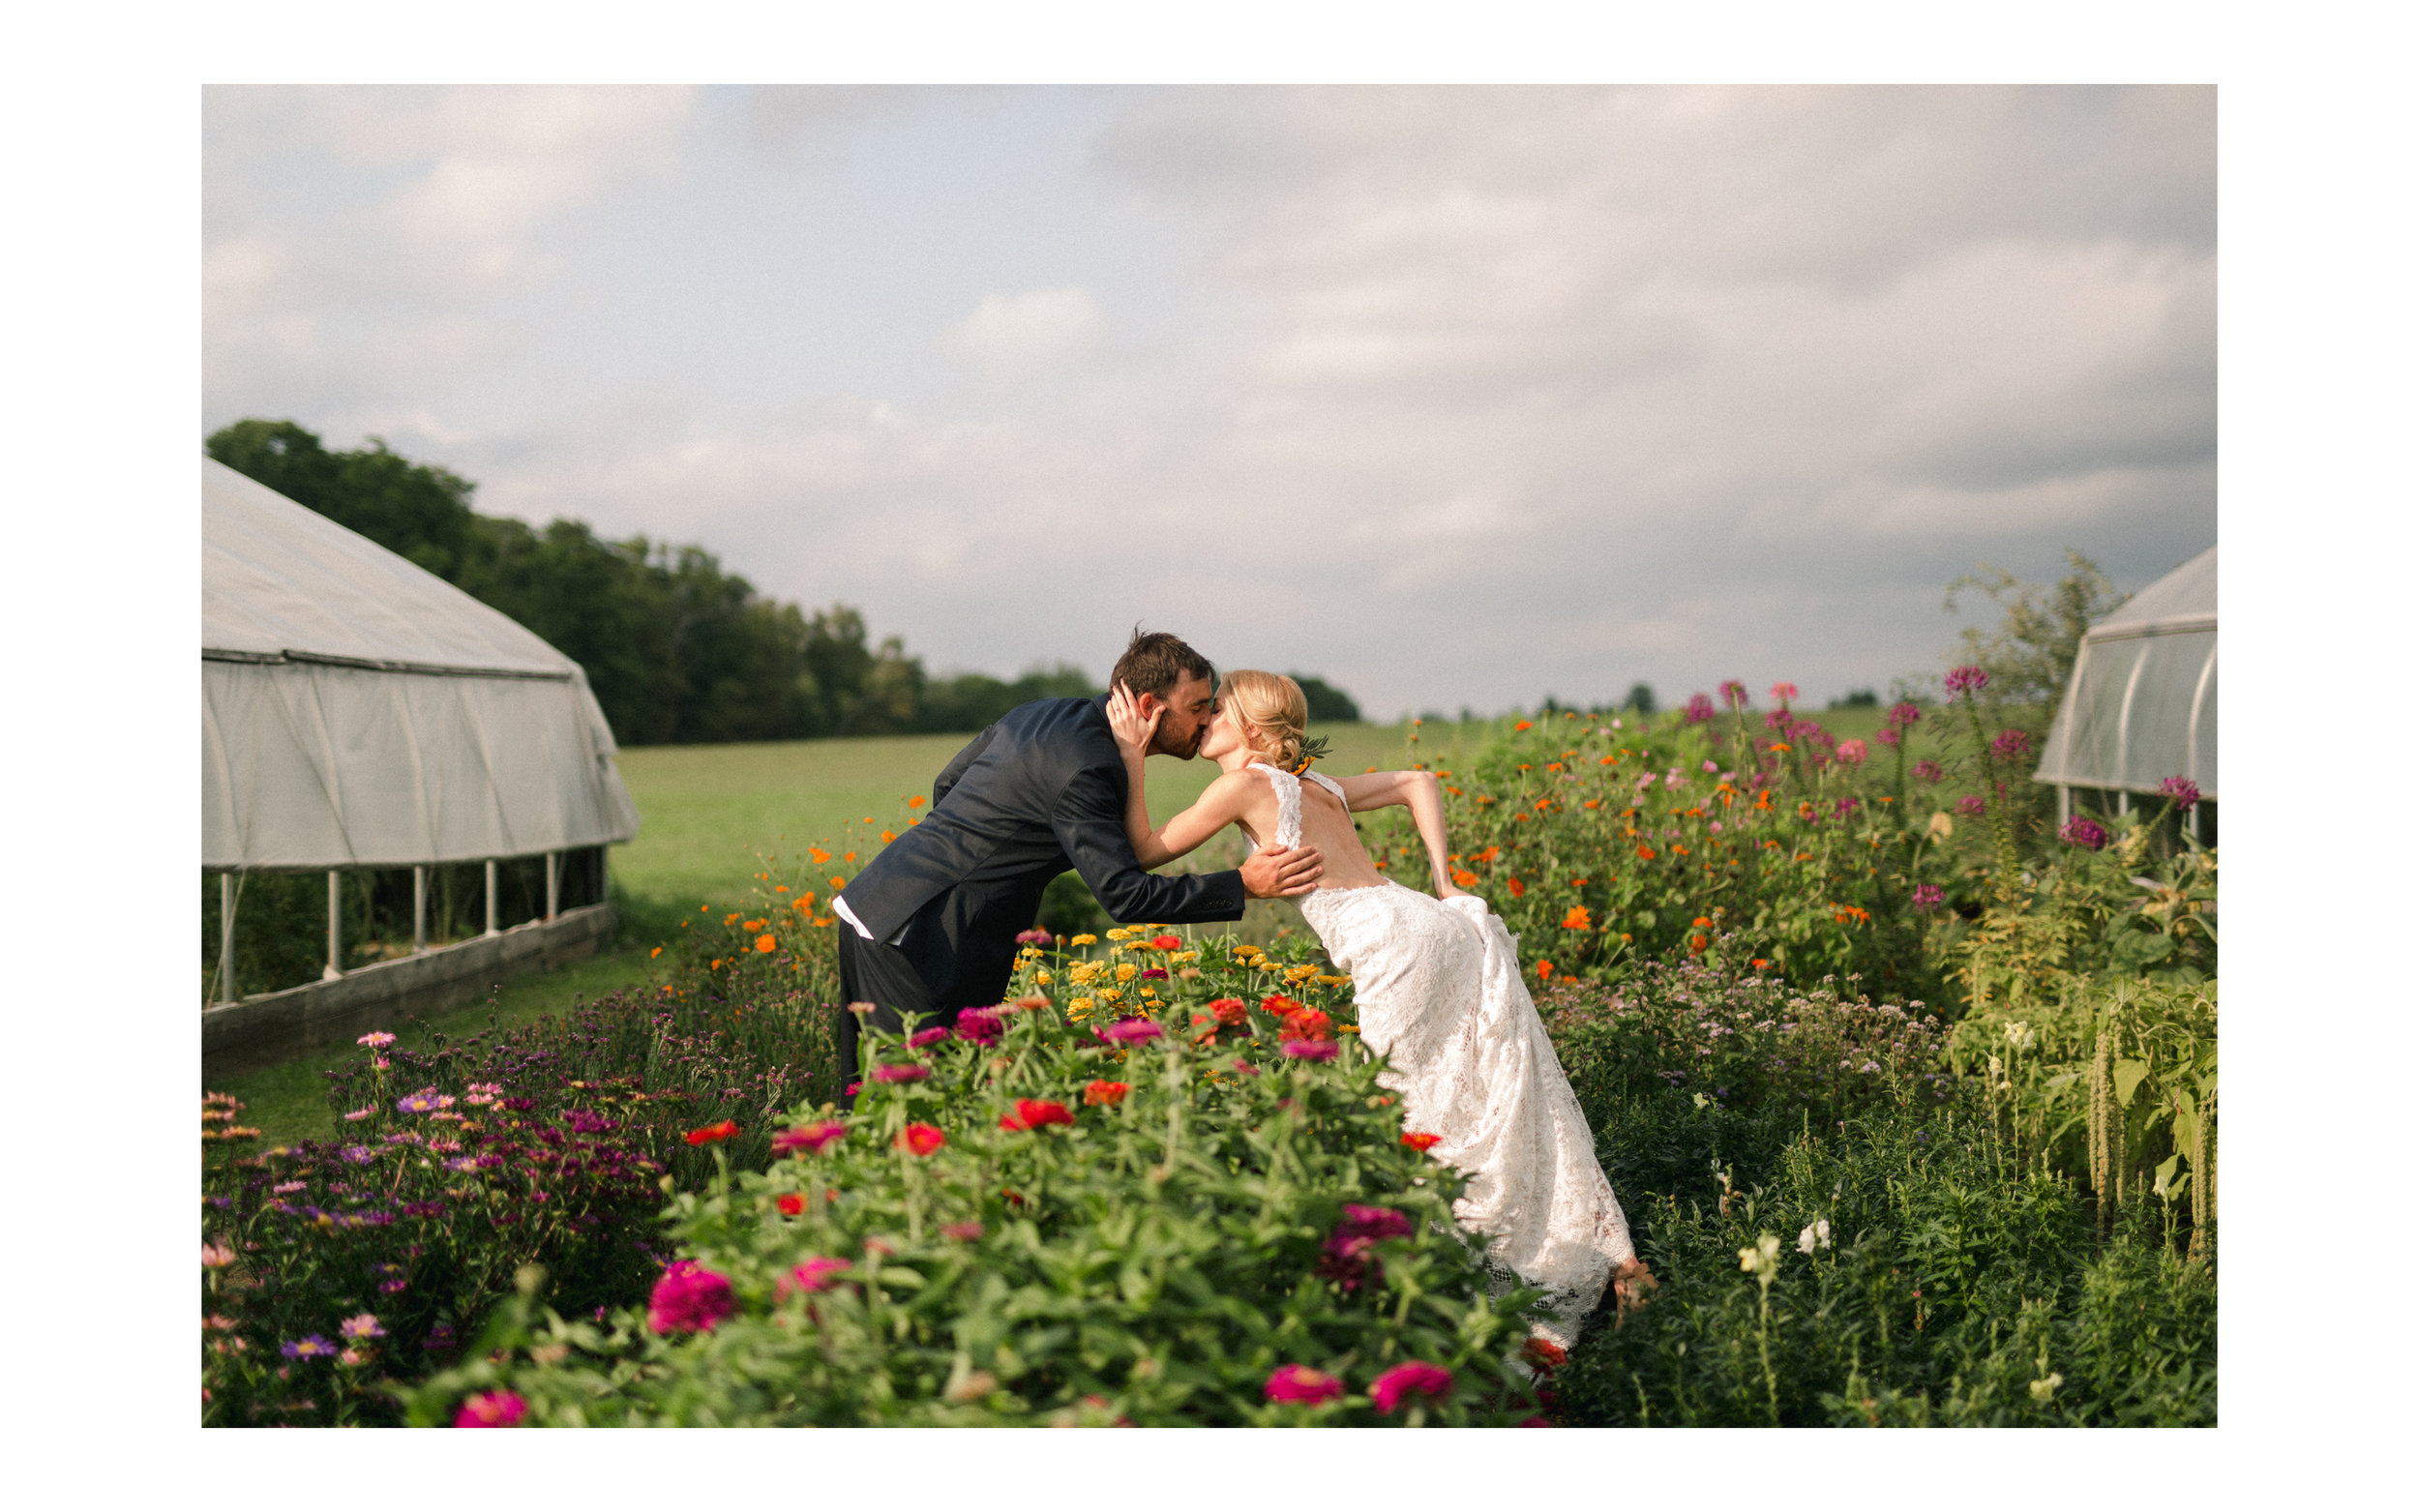 Stowe VT Wedding Fine Art Wedding Photographer_Meg Haley Photographs_007.jpg